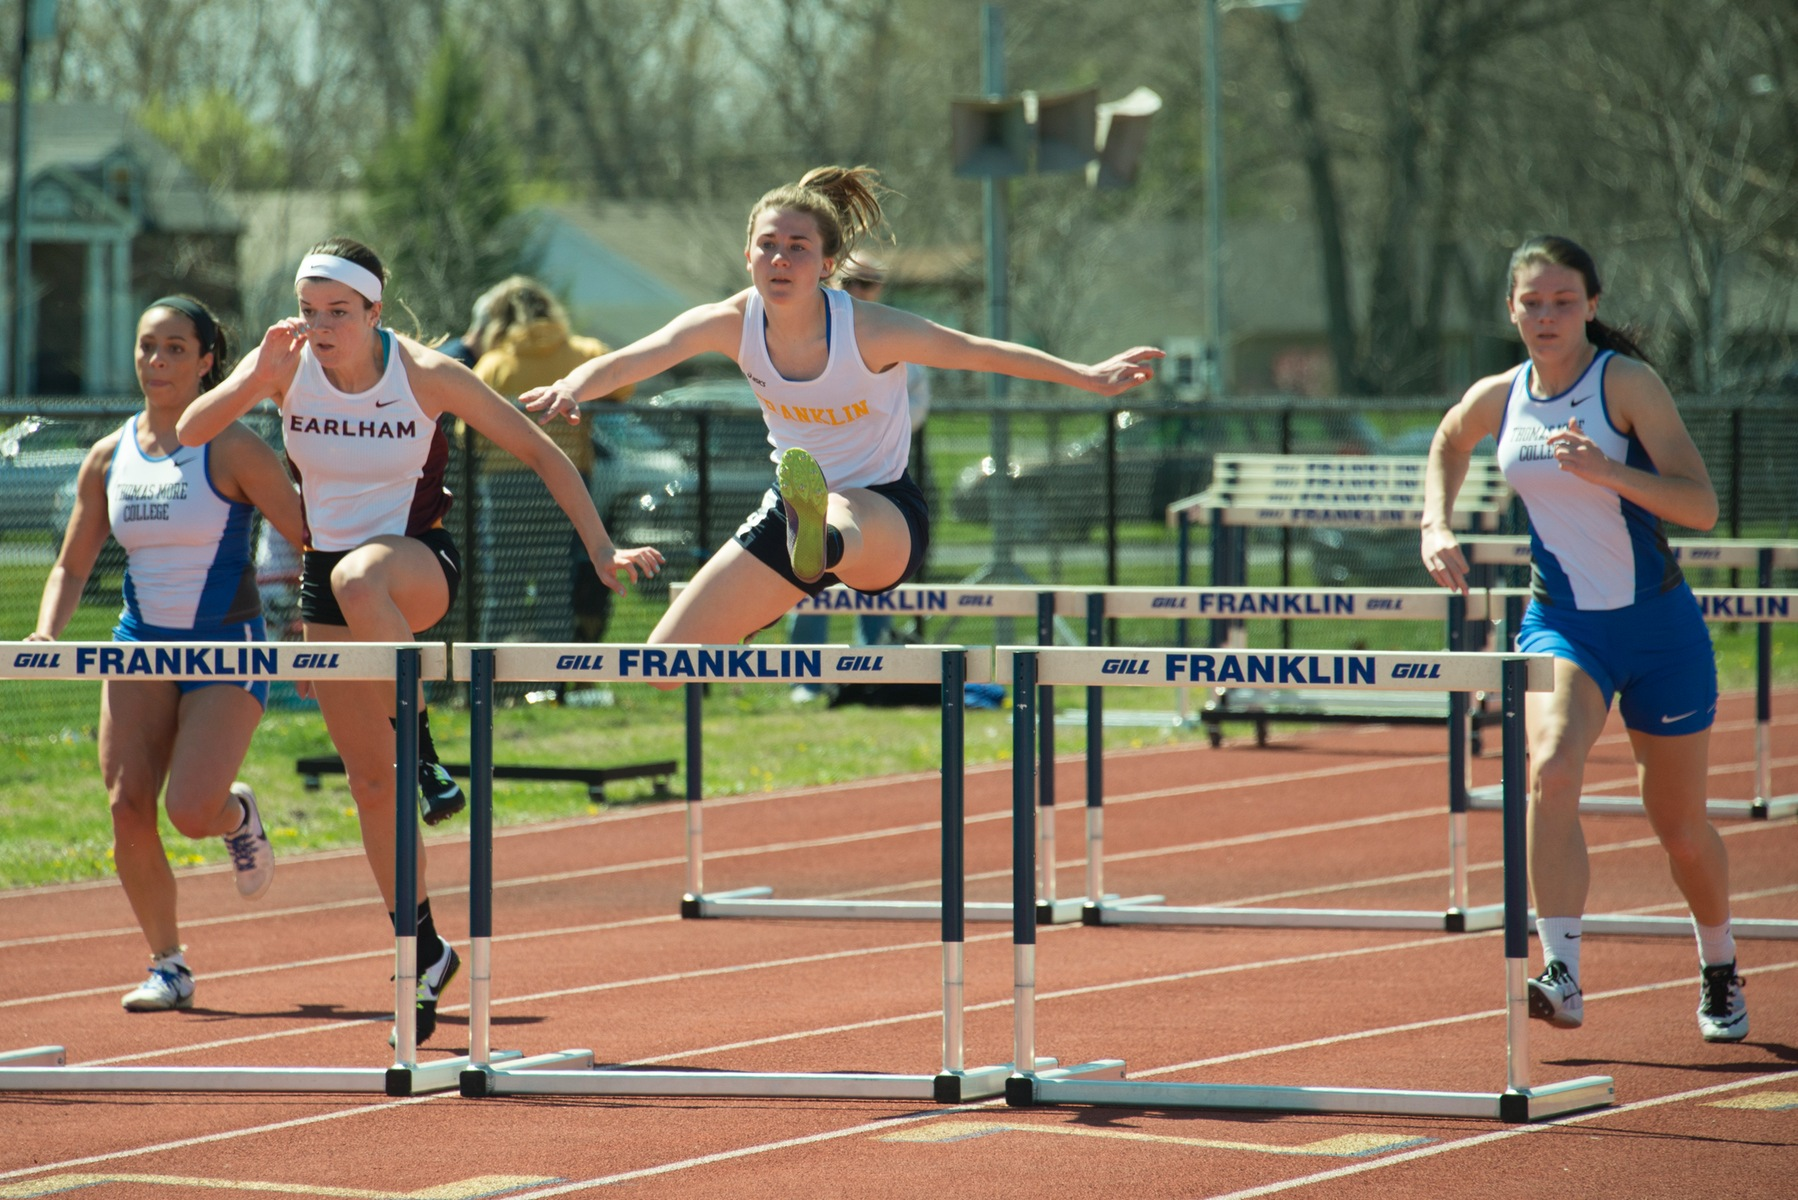 Women's Track and Field Team Has Strong Performances At Twilight Meet